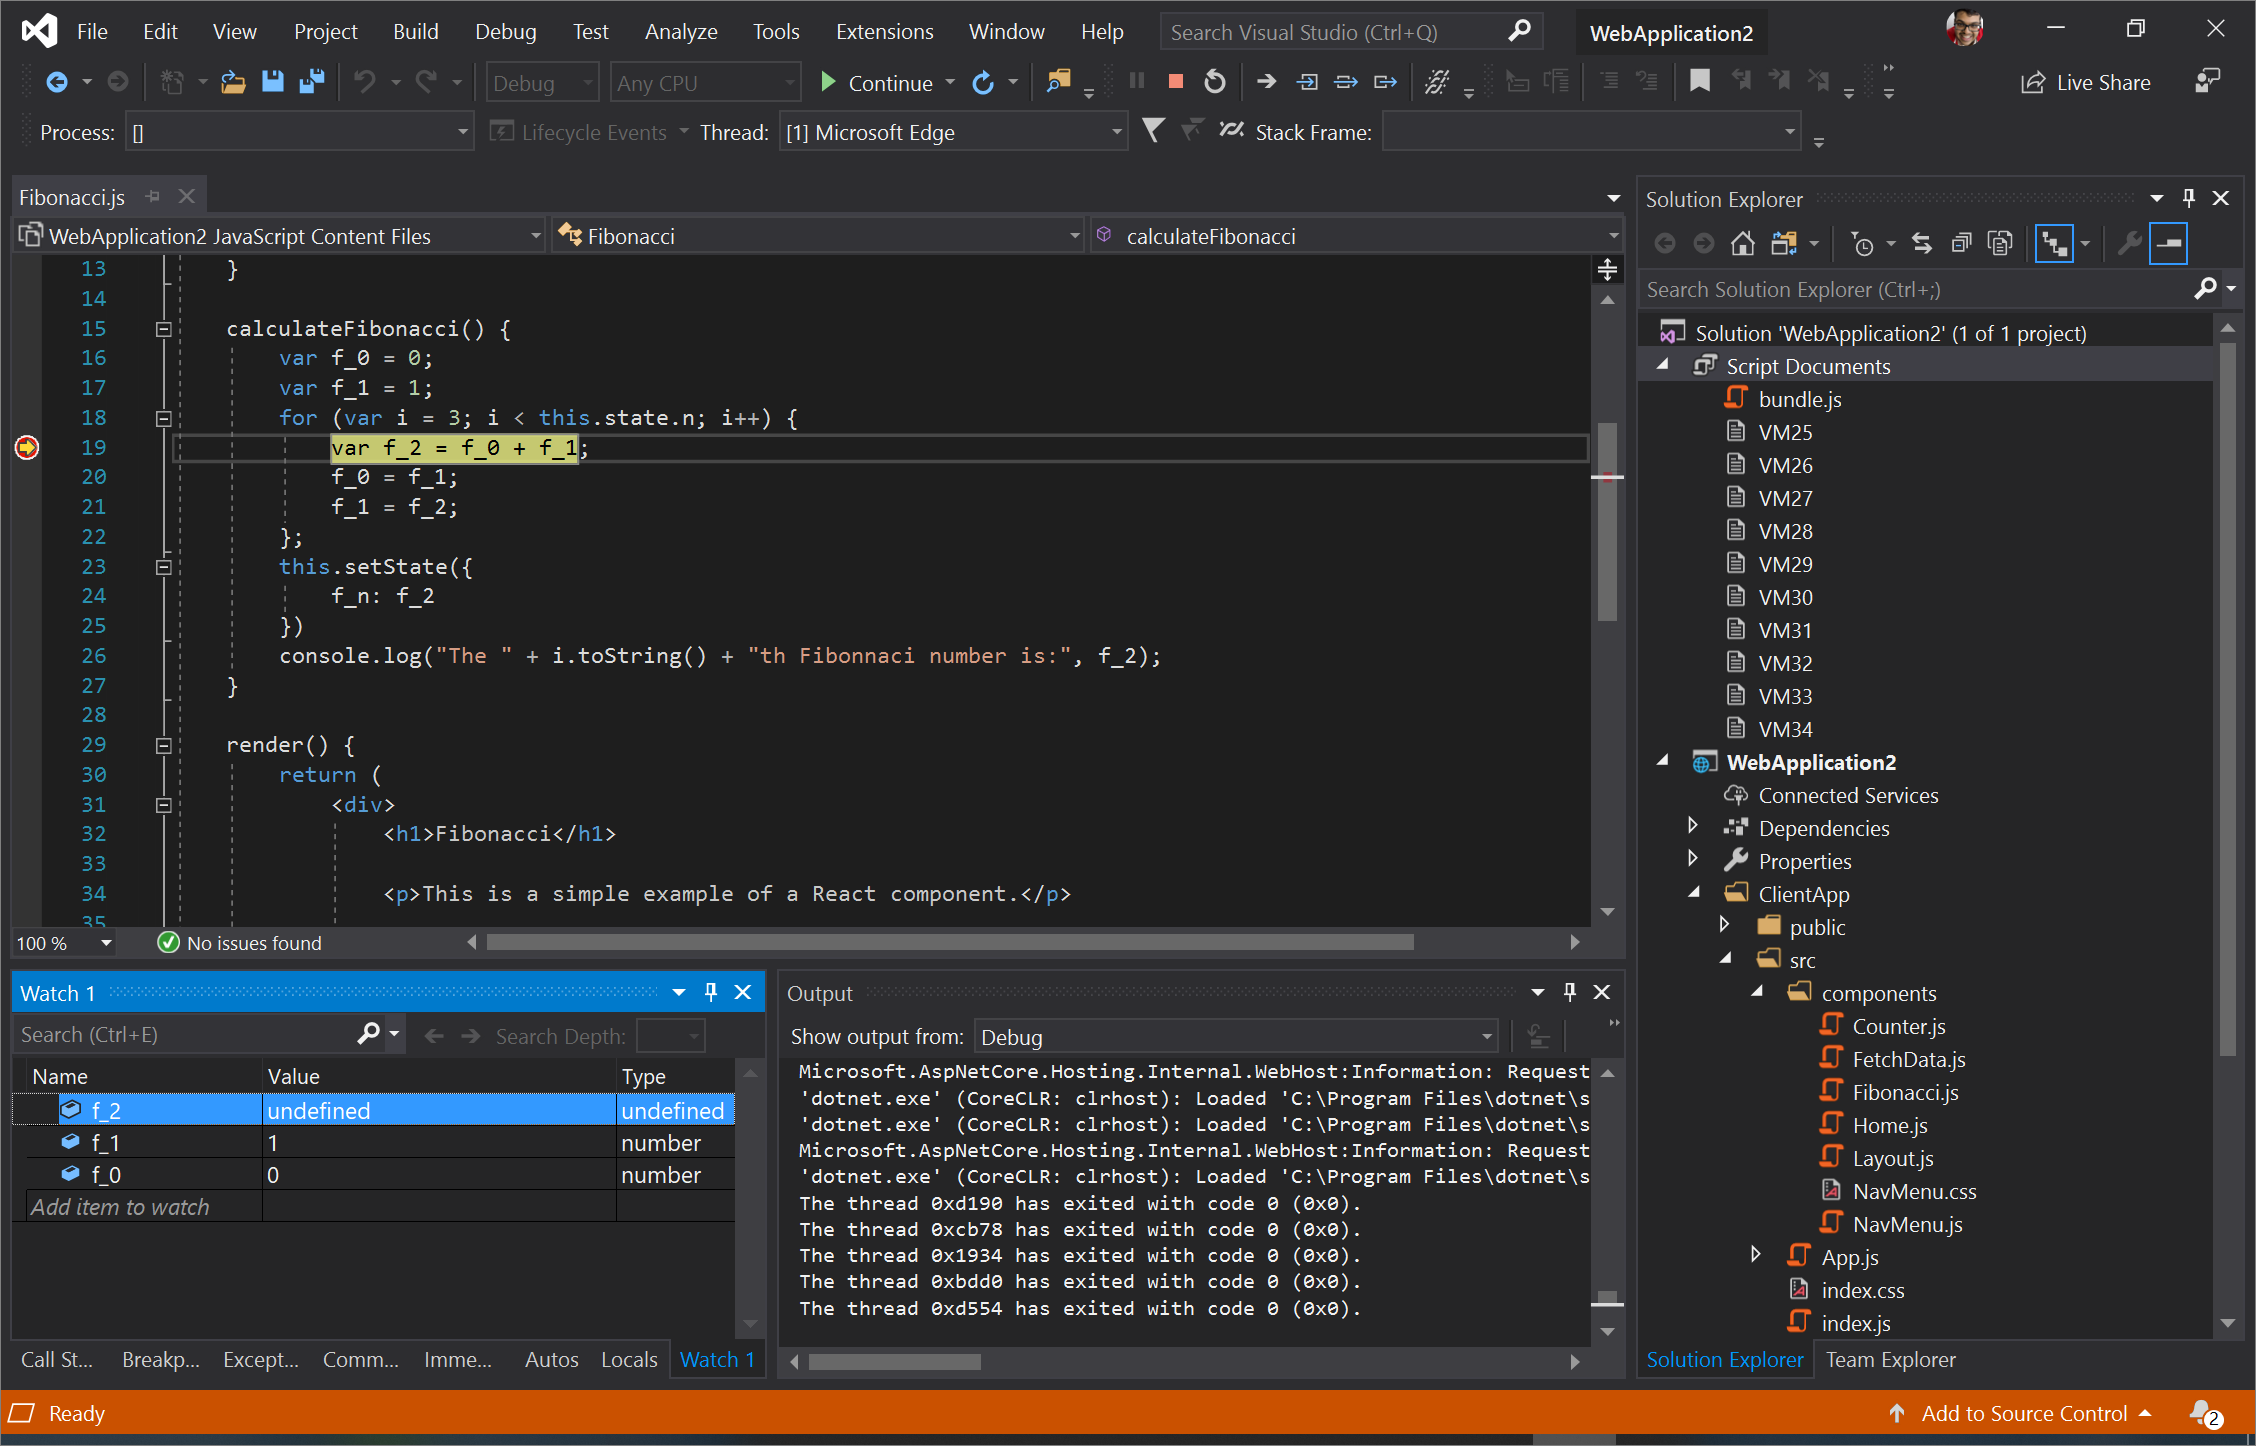 Screenshot of Visual Studio with a breakpoint set on Line 19 in Fibonacci.js and f_0, f_1, f_2 added to Watch 1